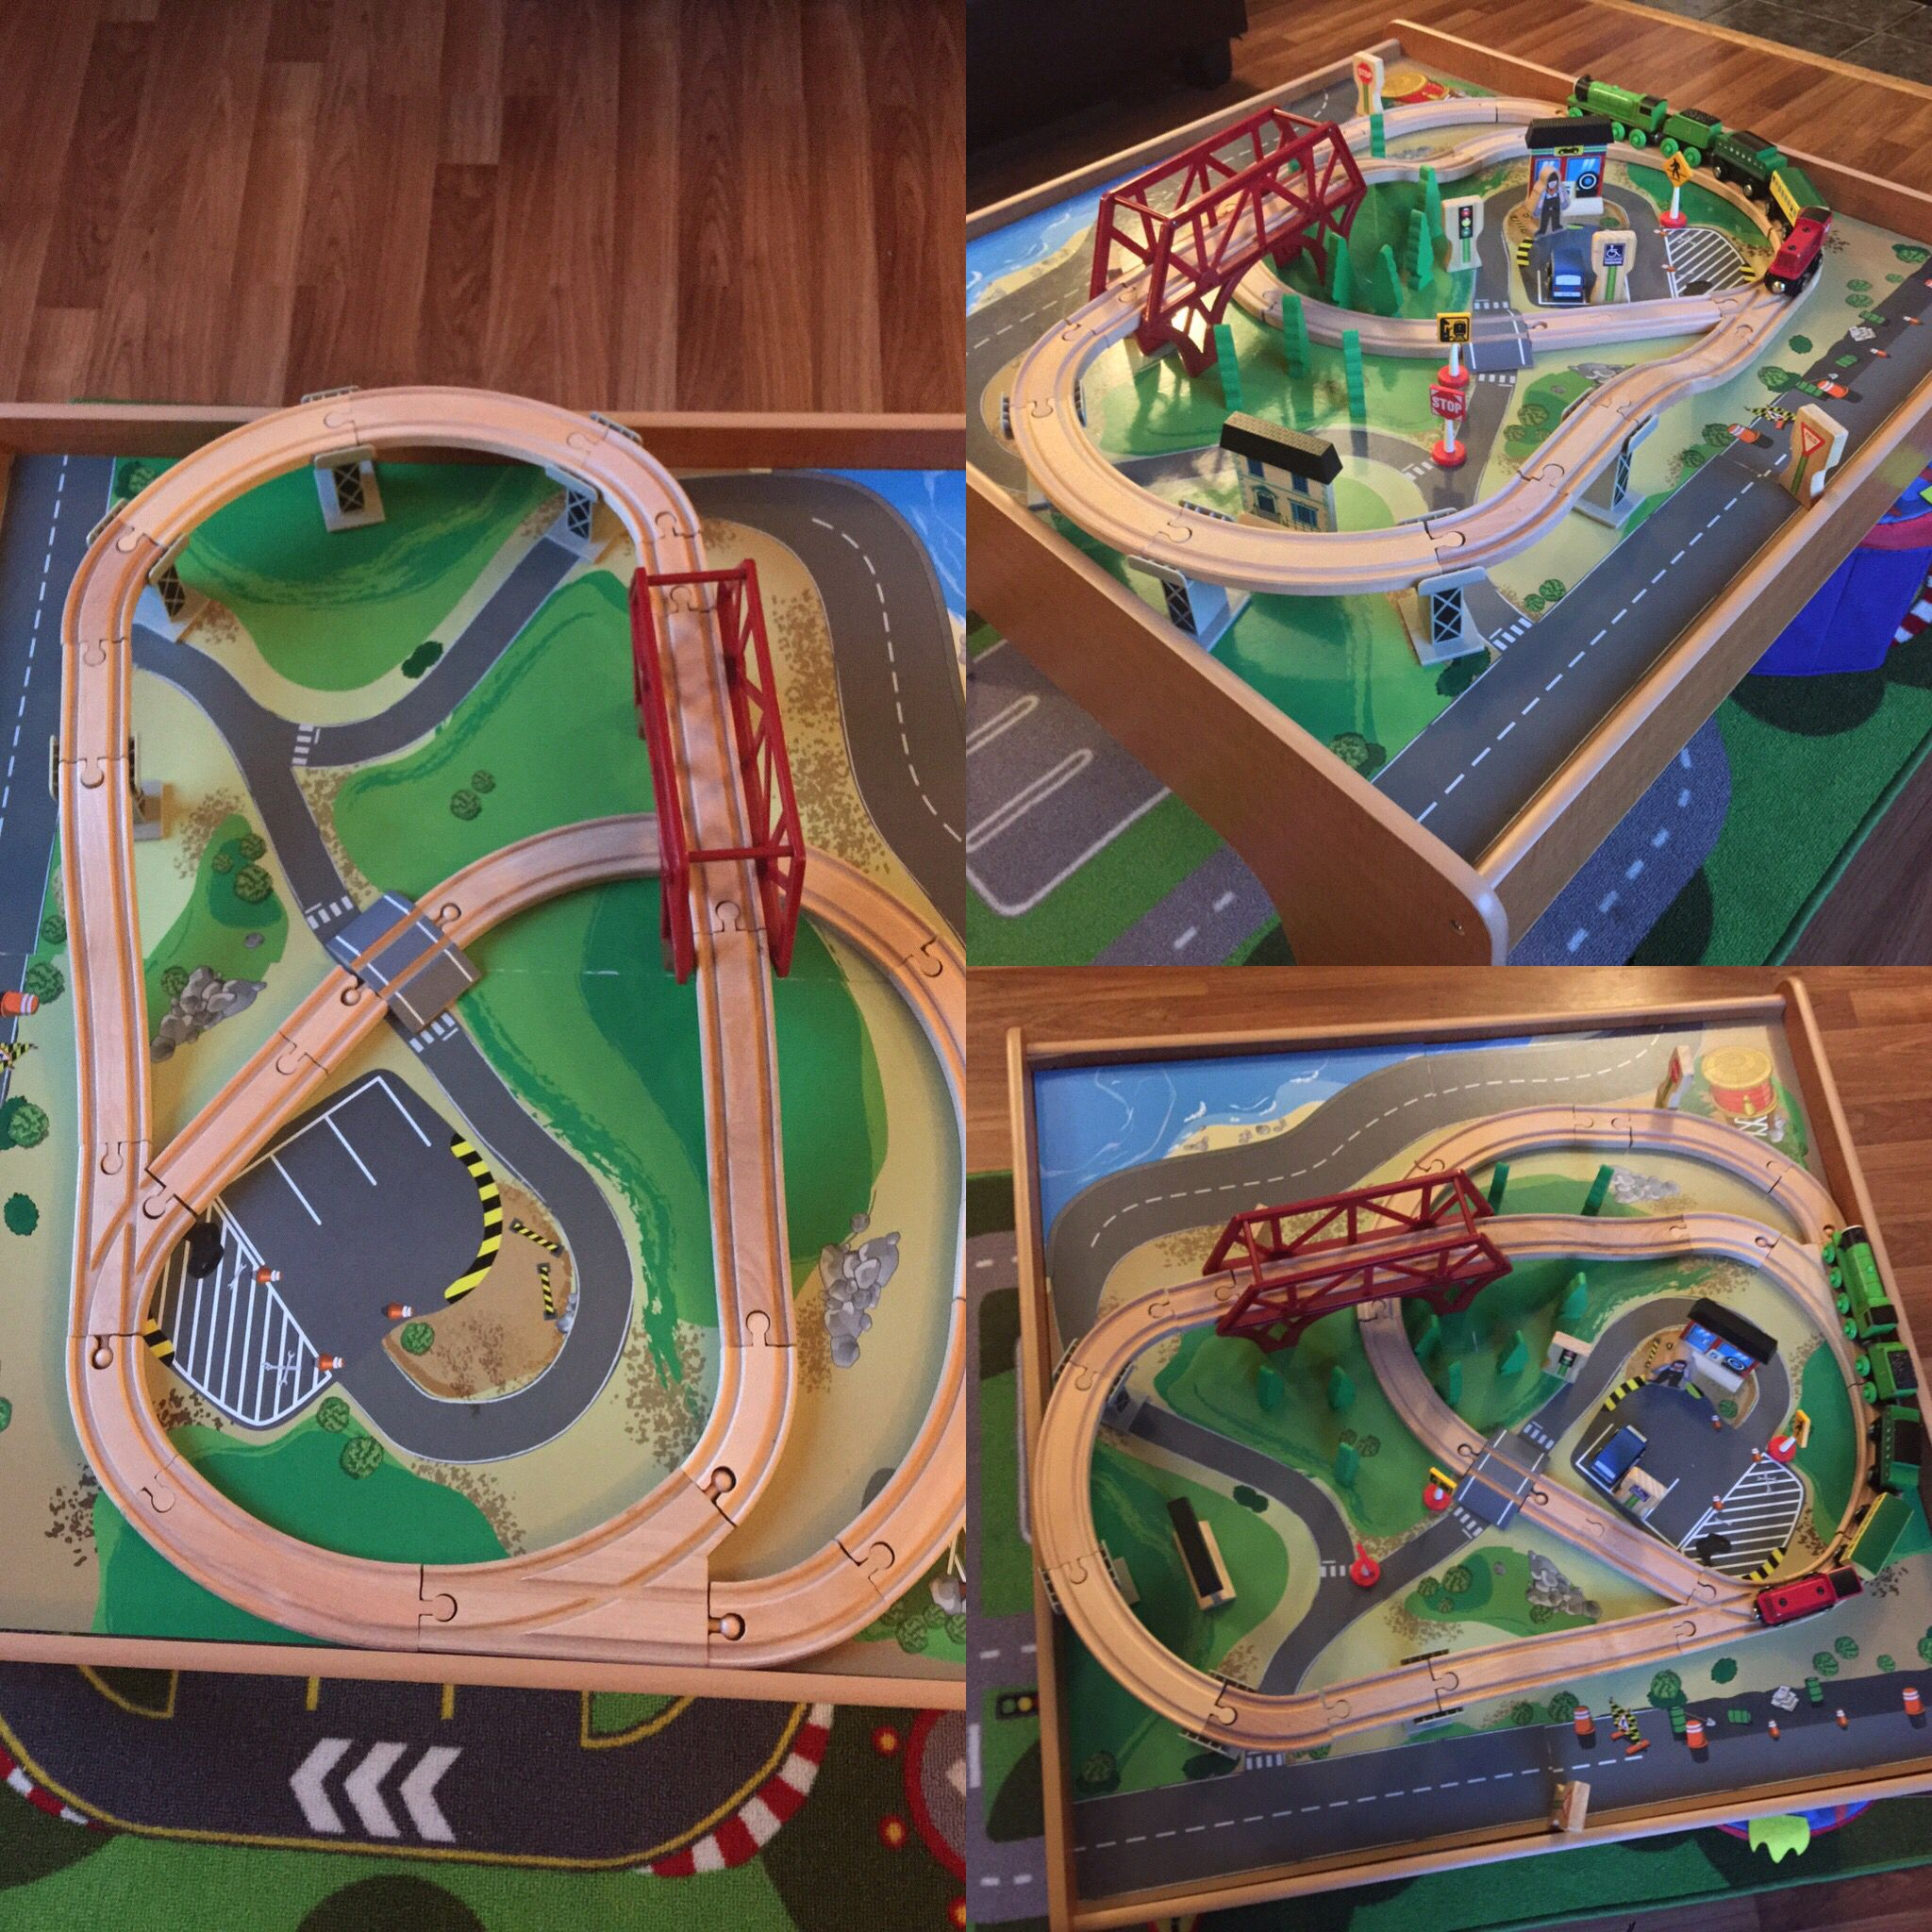 Imaginarium 55 piece train table set. This is the layout.  sc 1 st  Pinterest : imaginarium train table set up instructions - pezcame.com